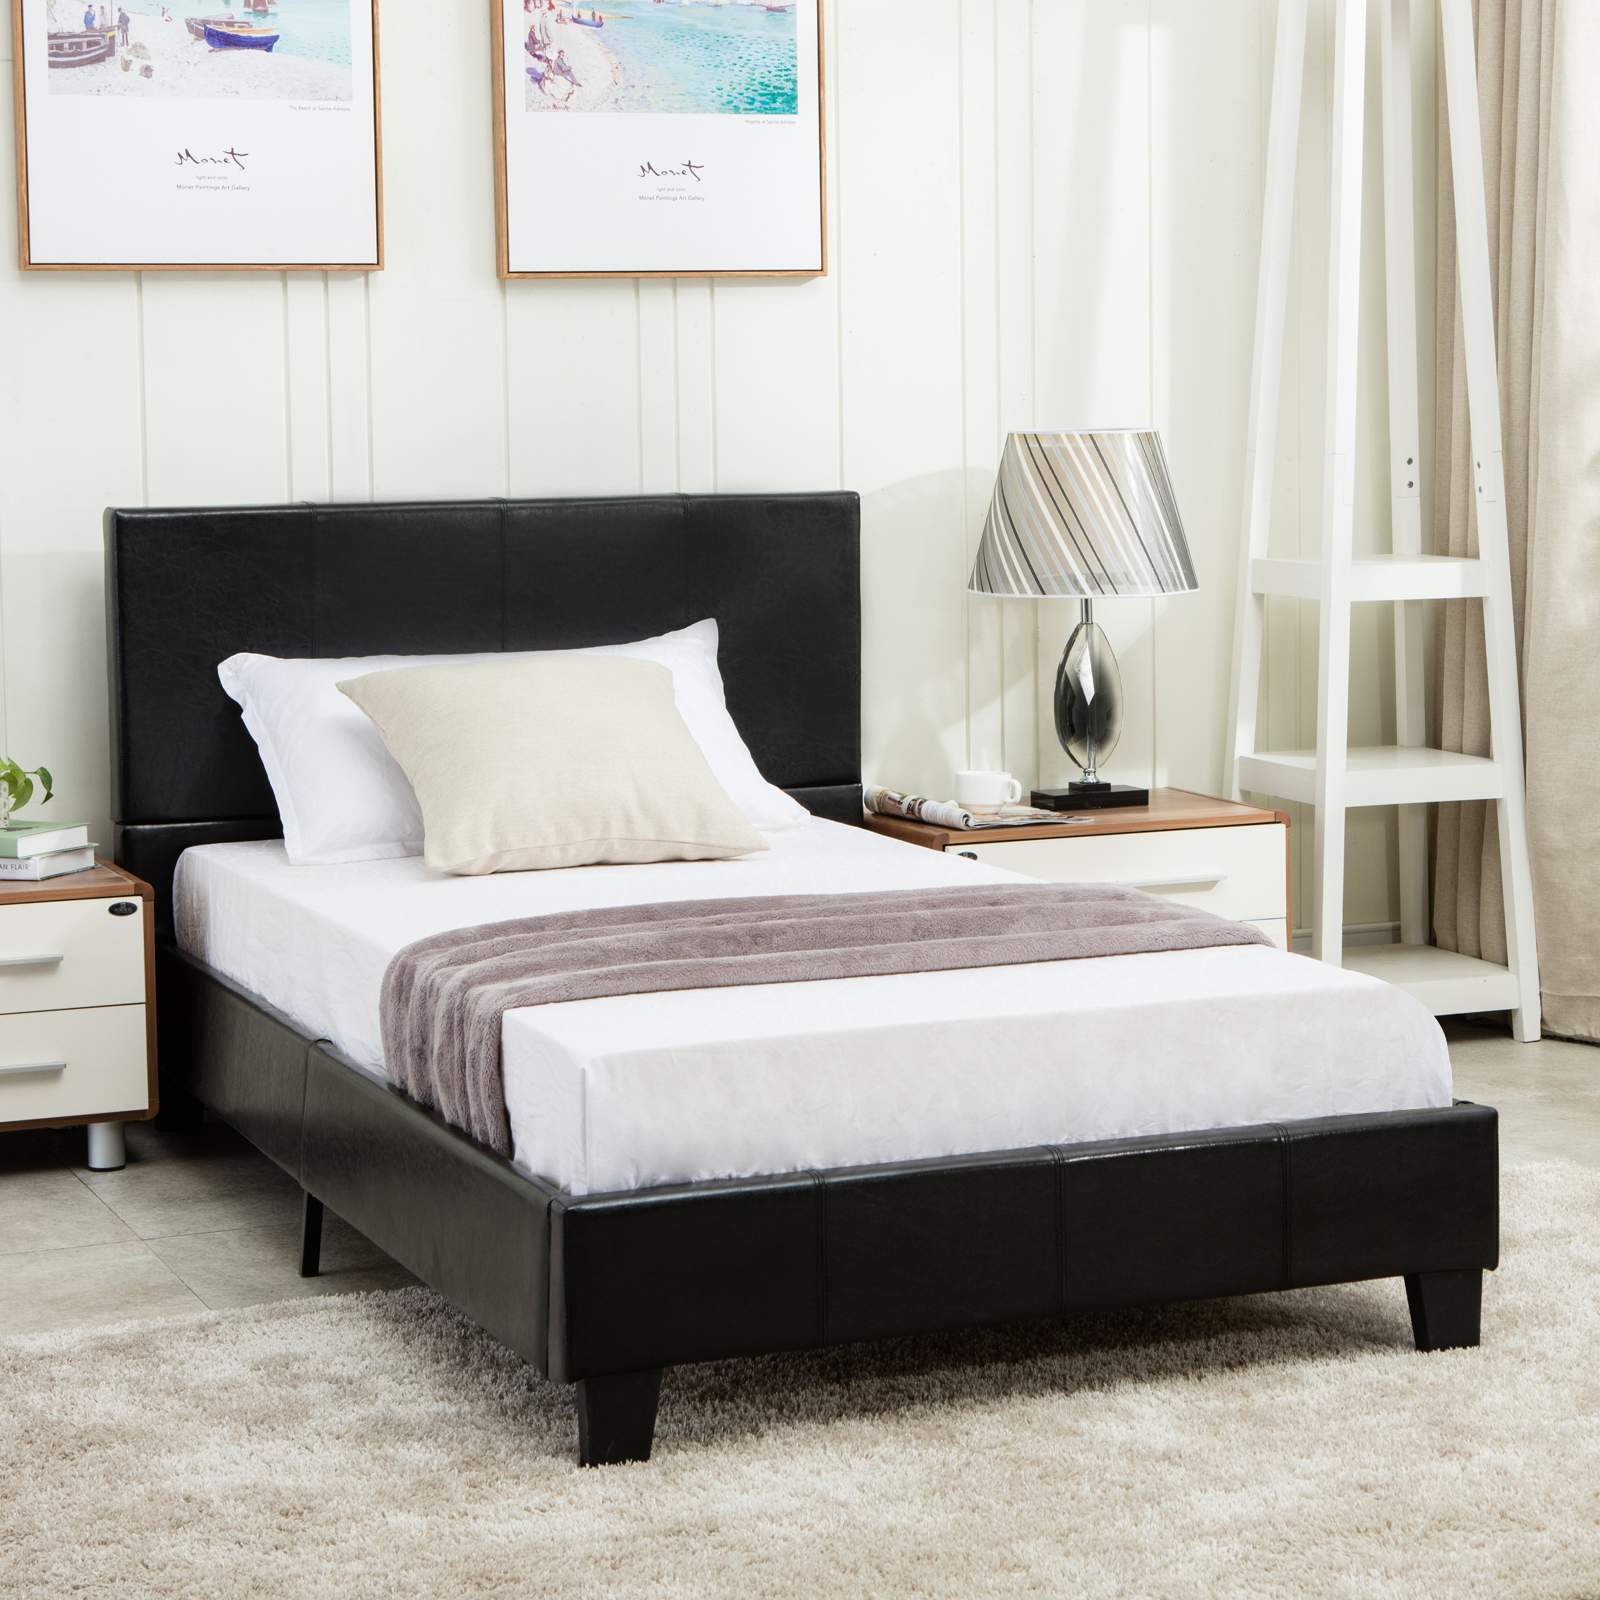 twin size faux leather platform bed frame slats upholstered headboard bedroom ebay. Black Bedroom Furniture Sets. Home Design Ideas